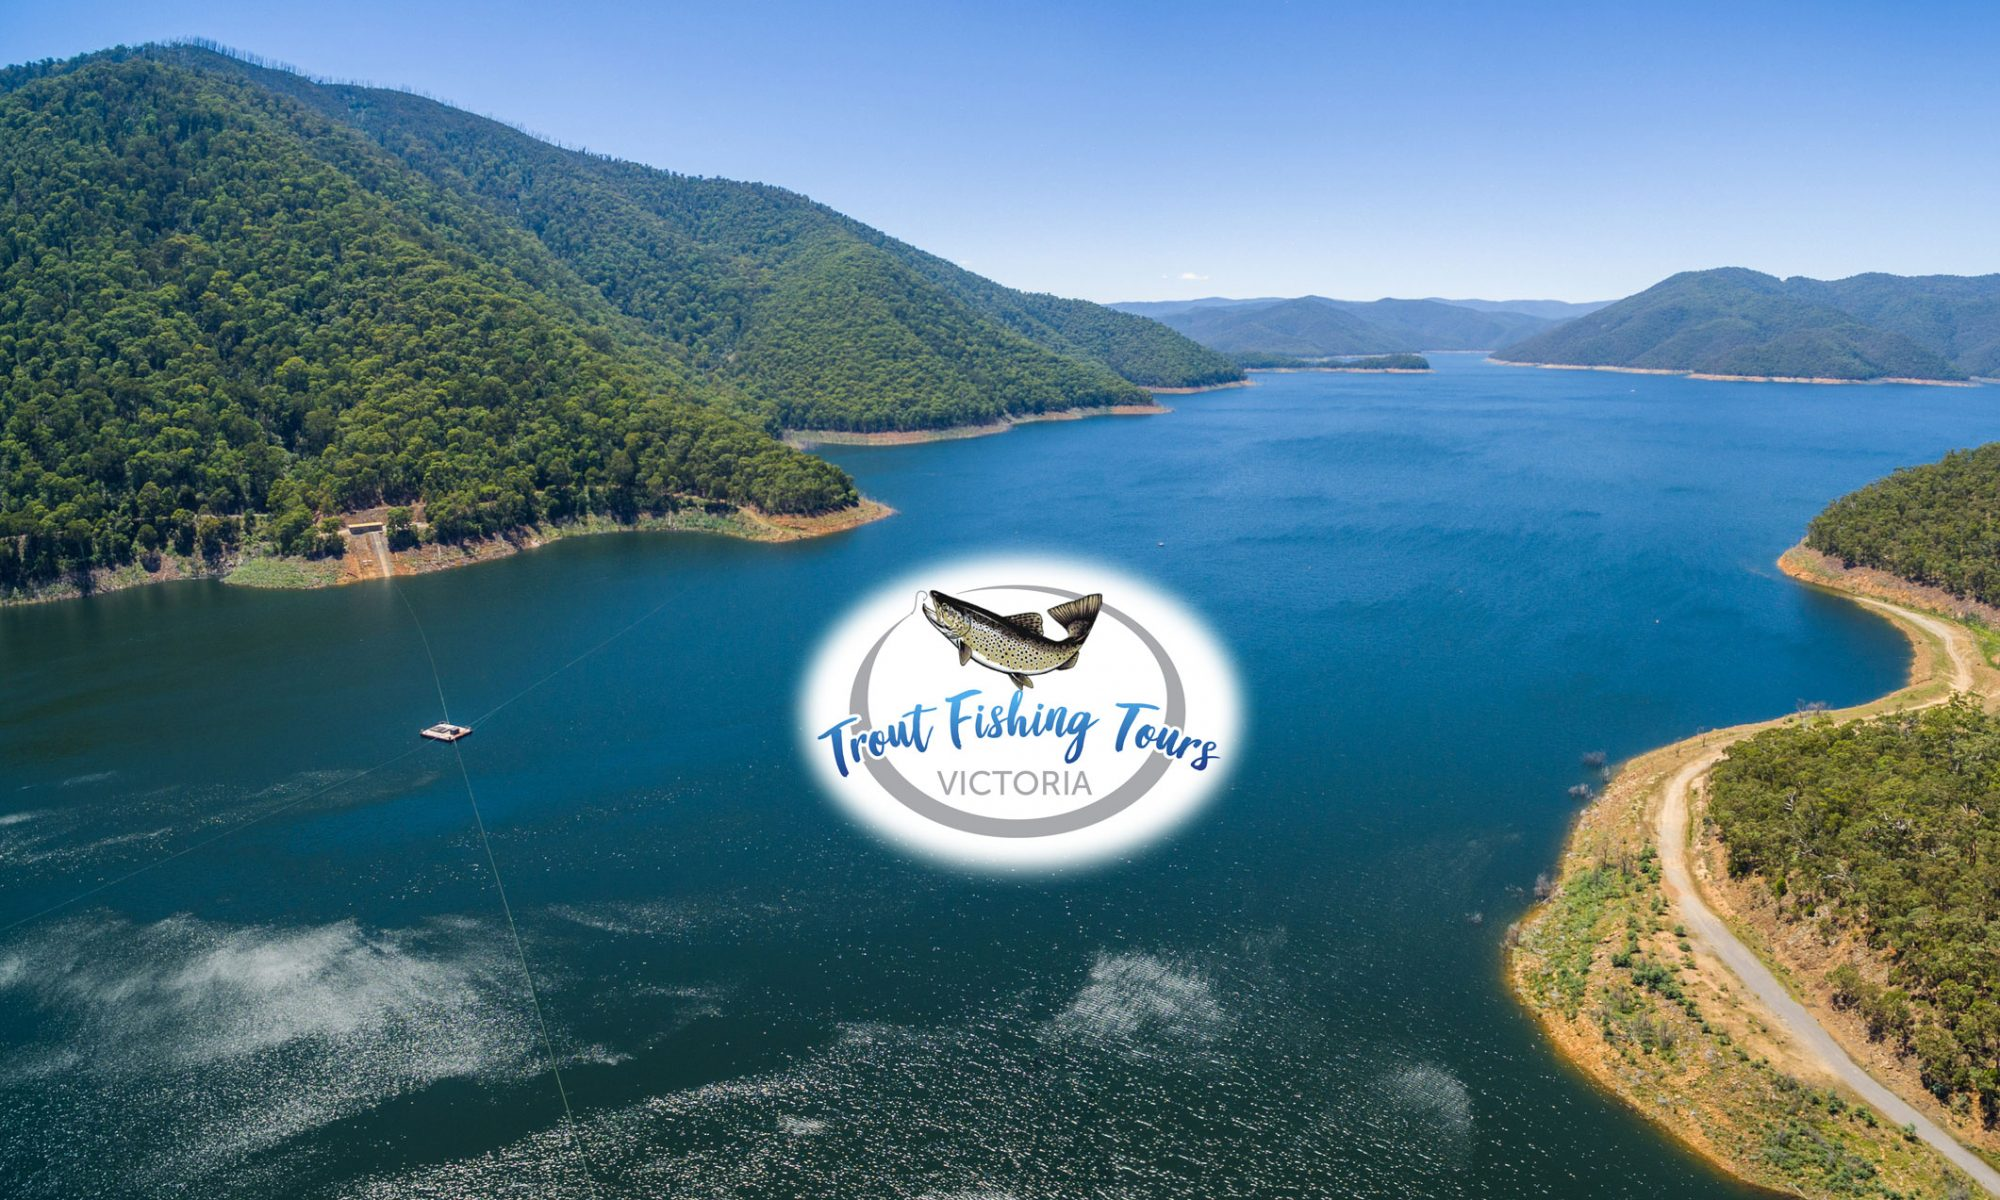 Trout Fishing Tours Victoria – Fishing trips to Victoria's High